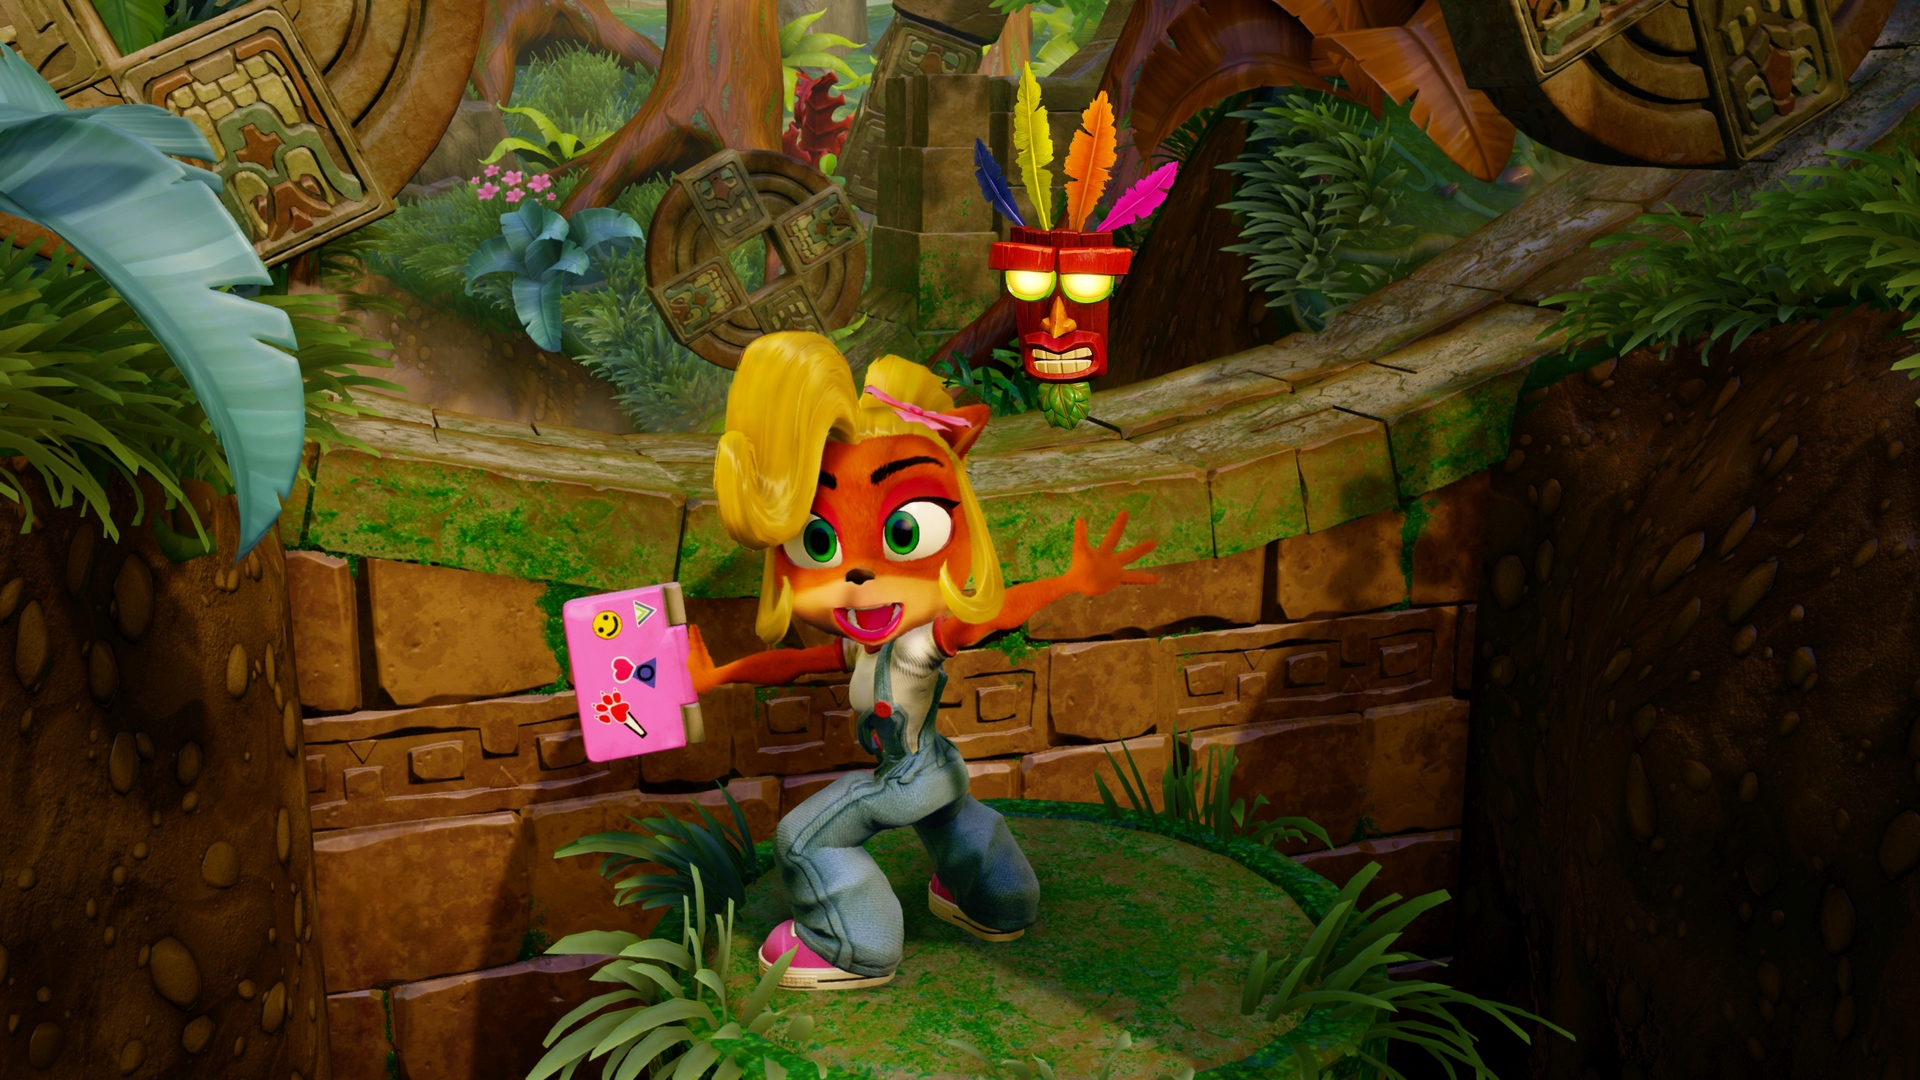 Coco Bandicoot N Sane Trilogy Hd Wallpaper Background Image